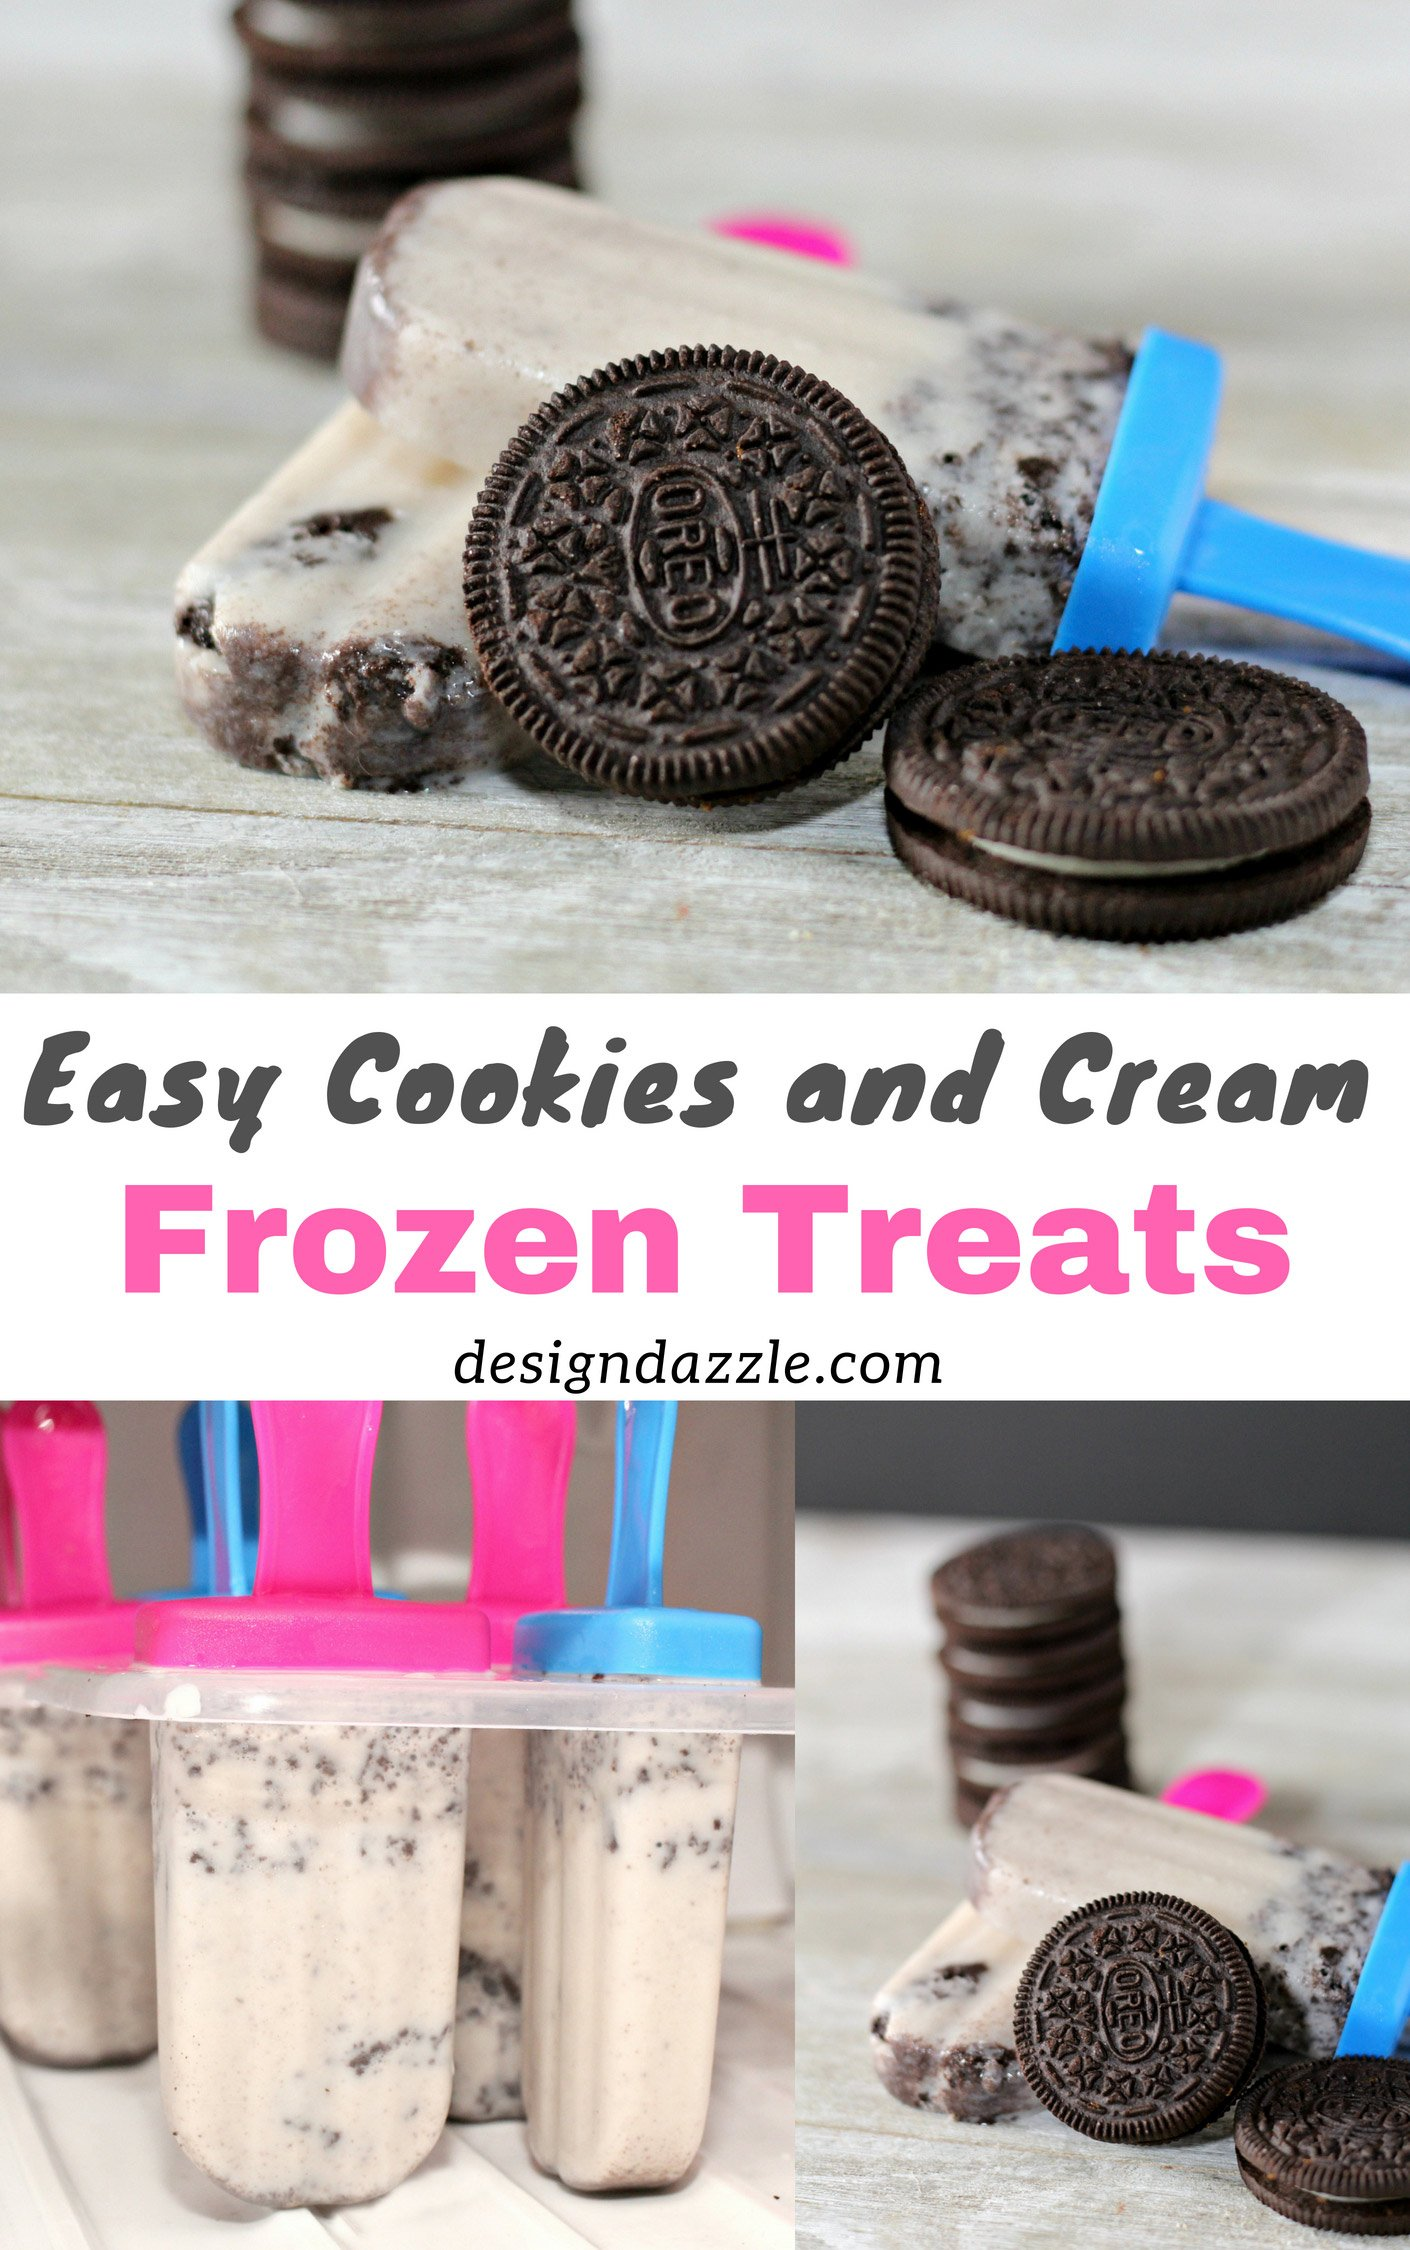 These cookies and cream frozen treats are super easy to make! Although you need to wait for few hours before they could be served, the wait will definitely be worth it! These are perfect for an afternoon snacks for both the kids and adult in the house or as treats for your party...an Oreo themed party! Why not!- Design Dazzle